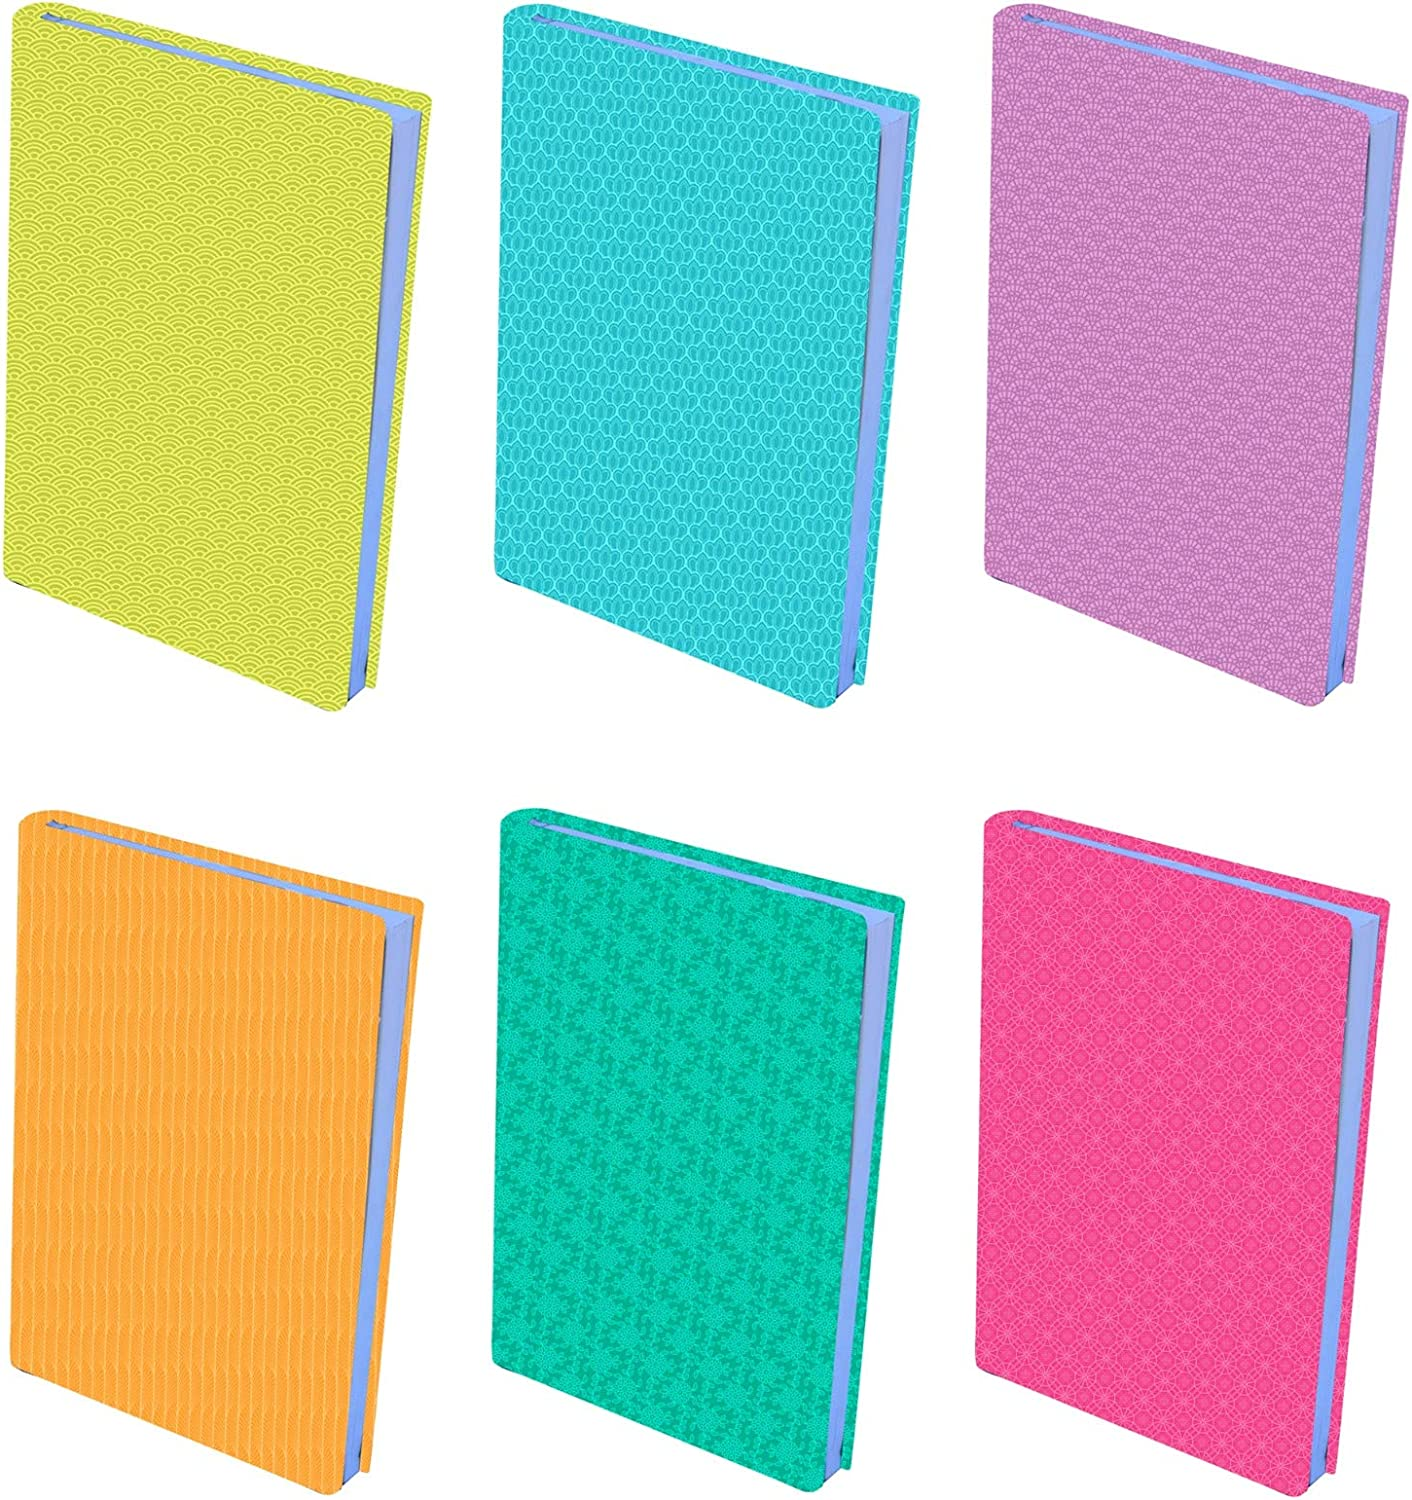 InstyleCraft Stretchable Fabric Book 6 Inventory cleanup selling sale Max 57% OFF Cover- Prints S2-Pattern